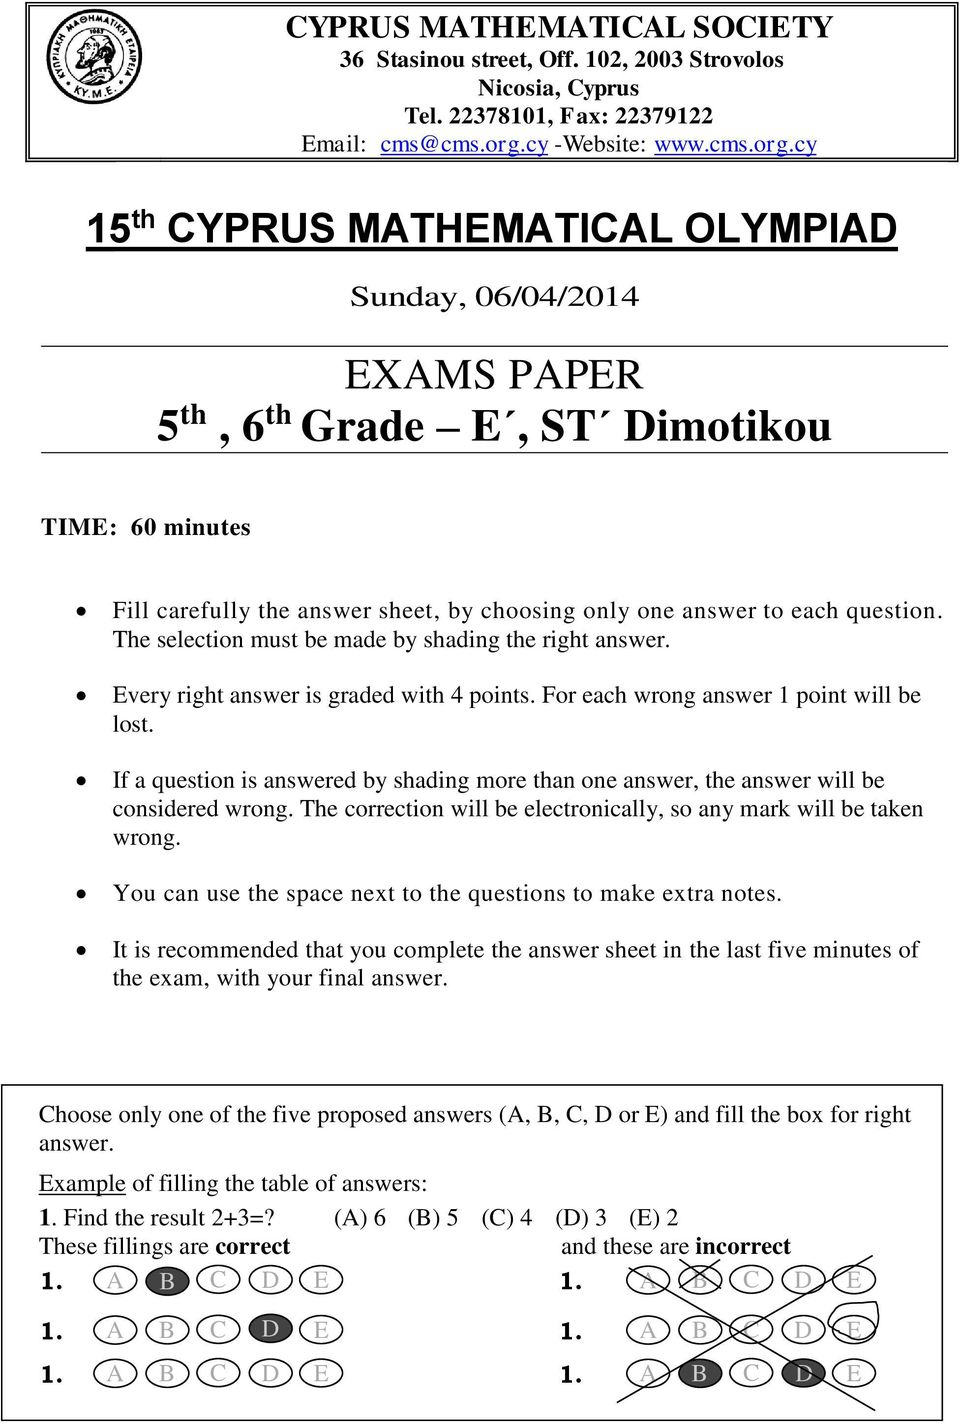 cy 15 th CYPRUS MATHEMATICAL OLYMPIAD Sunday, 06/04/2014 EXAMS PAPER 5 th, 6 th Grade E, ST Dimotikou TIME: 60 minutes Fill carefully the answer sheet, by choosing only one answer to each question.